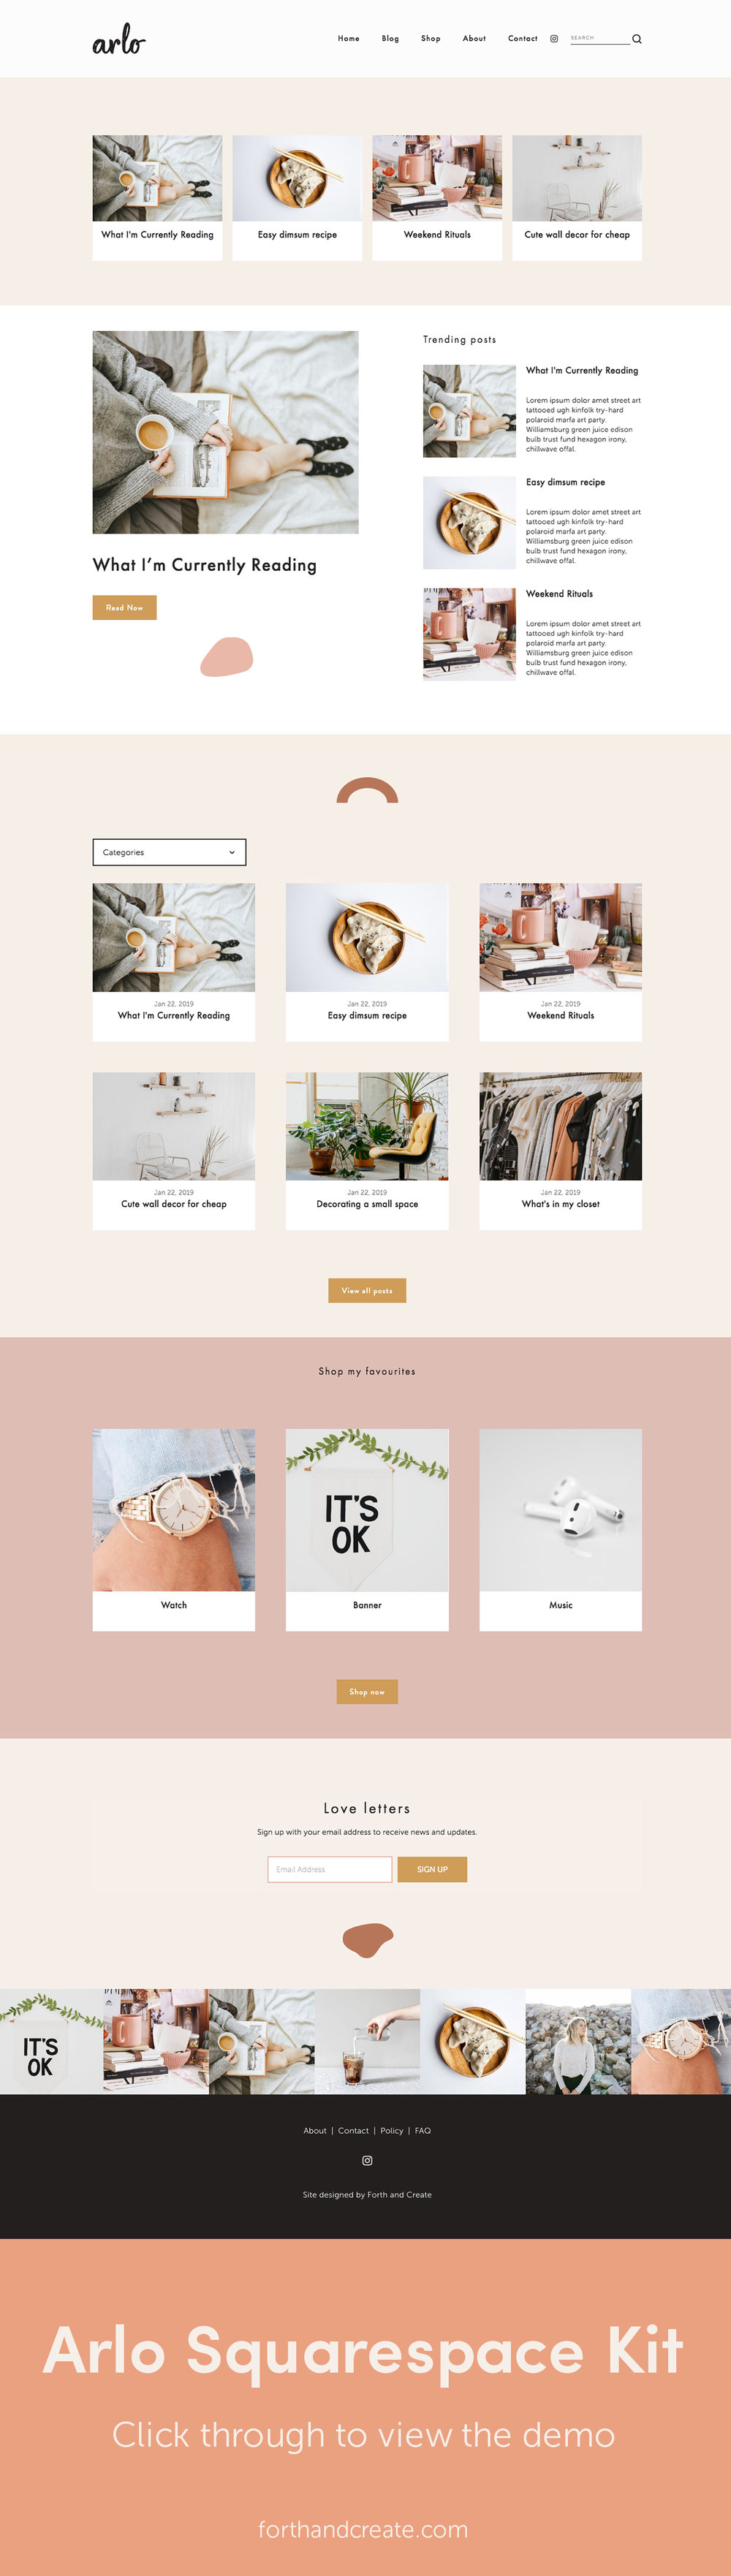 Arlo Squarespace kit comes with instructional videos to help get your beautiful website up and running in no time. The Arlo Squarespace kit is perfect for bloggers. Click through to view the demo. #Squarespace #Squarespacekit #Squarespacetemplate #Websitedesign #blogger